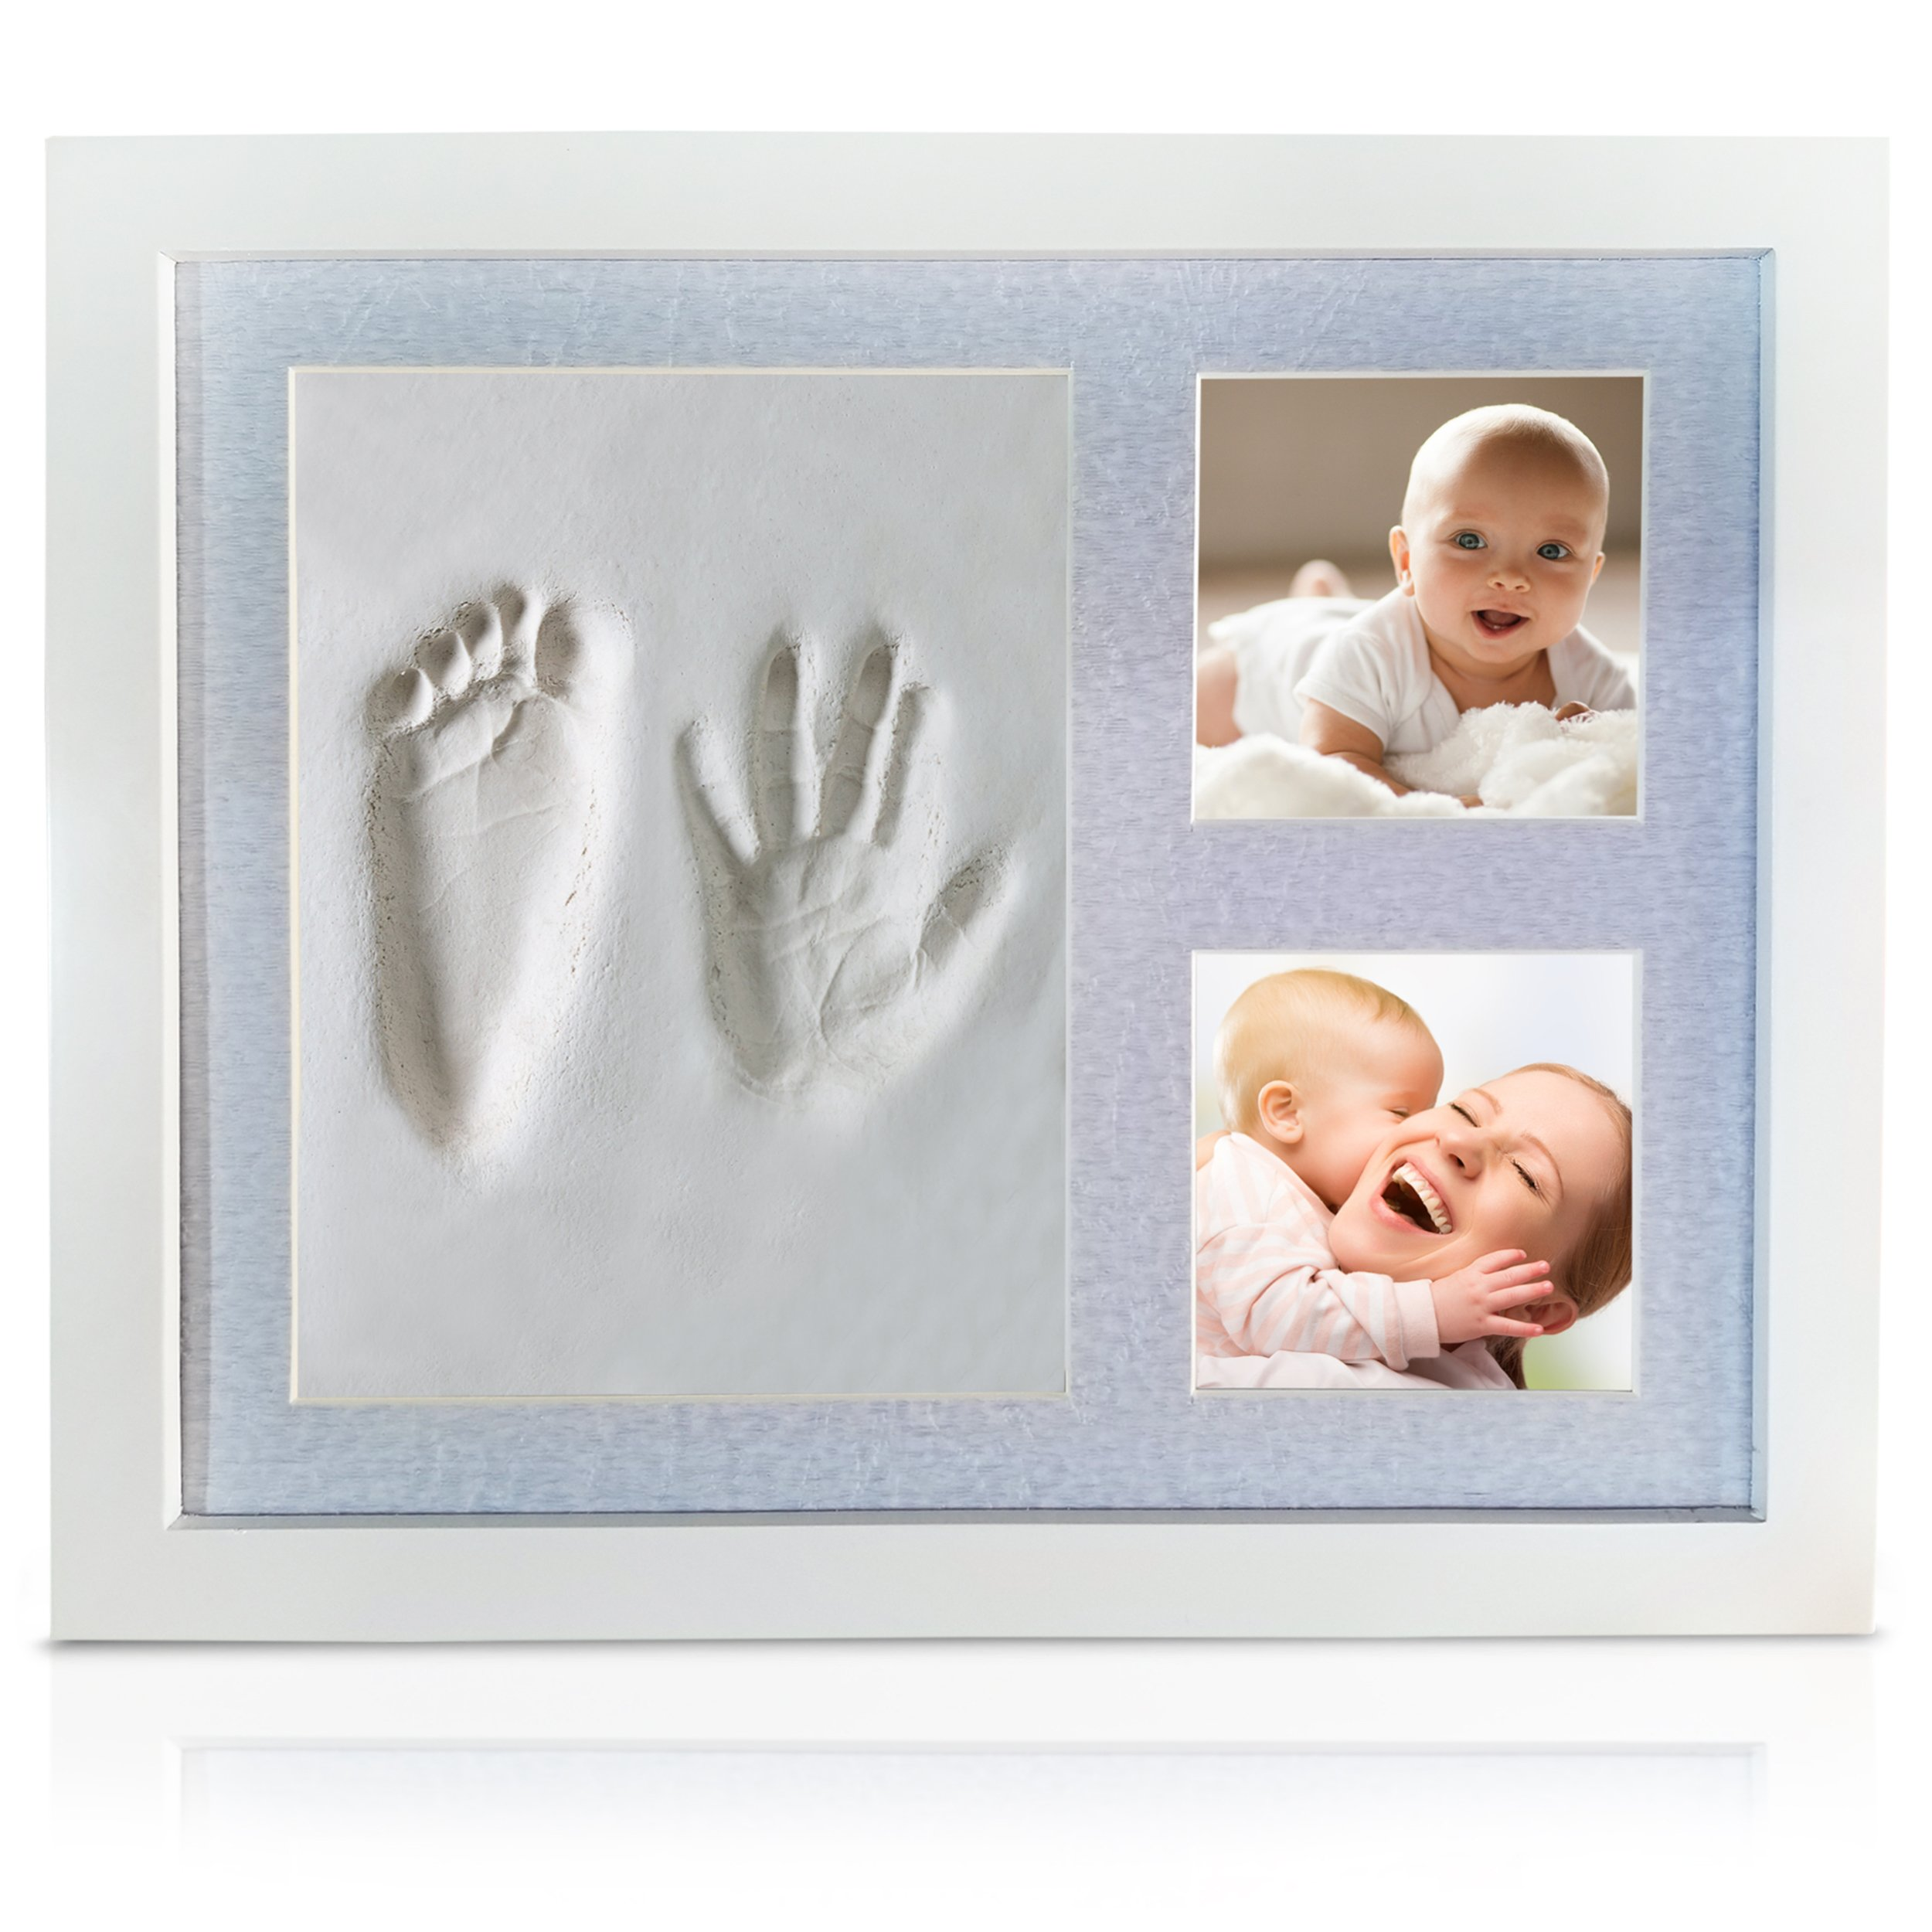 Veahma Baby Quality Clay Imprint Kit! White Wood Picture Frame|(BLUE) Mat|Non-Toxic Clay|Hand/Foot Print Kit|Unique Baby Shower Gift for New Born Baby, Boy, Girl, Pet, Parents! (Light Blue)